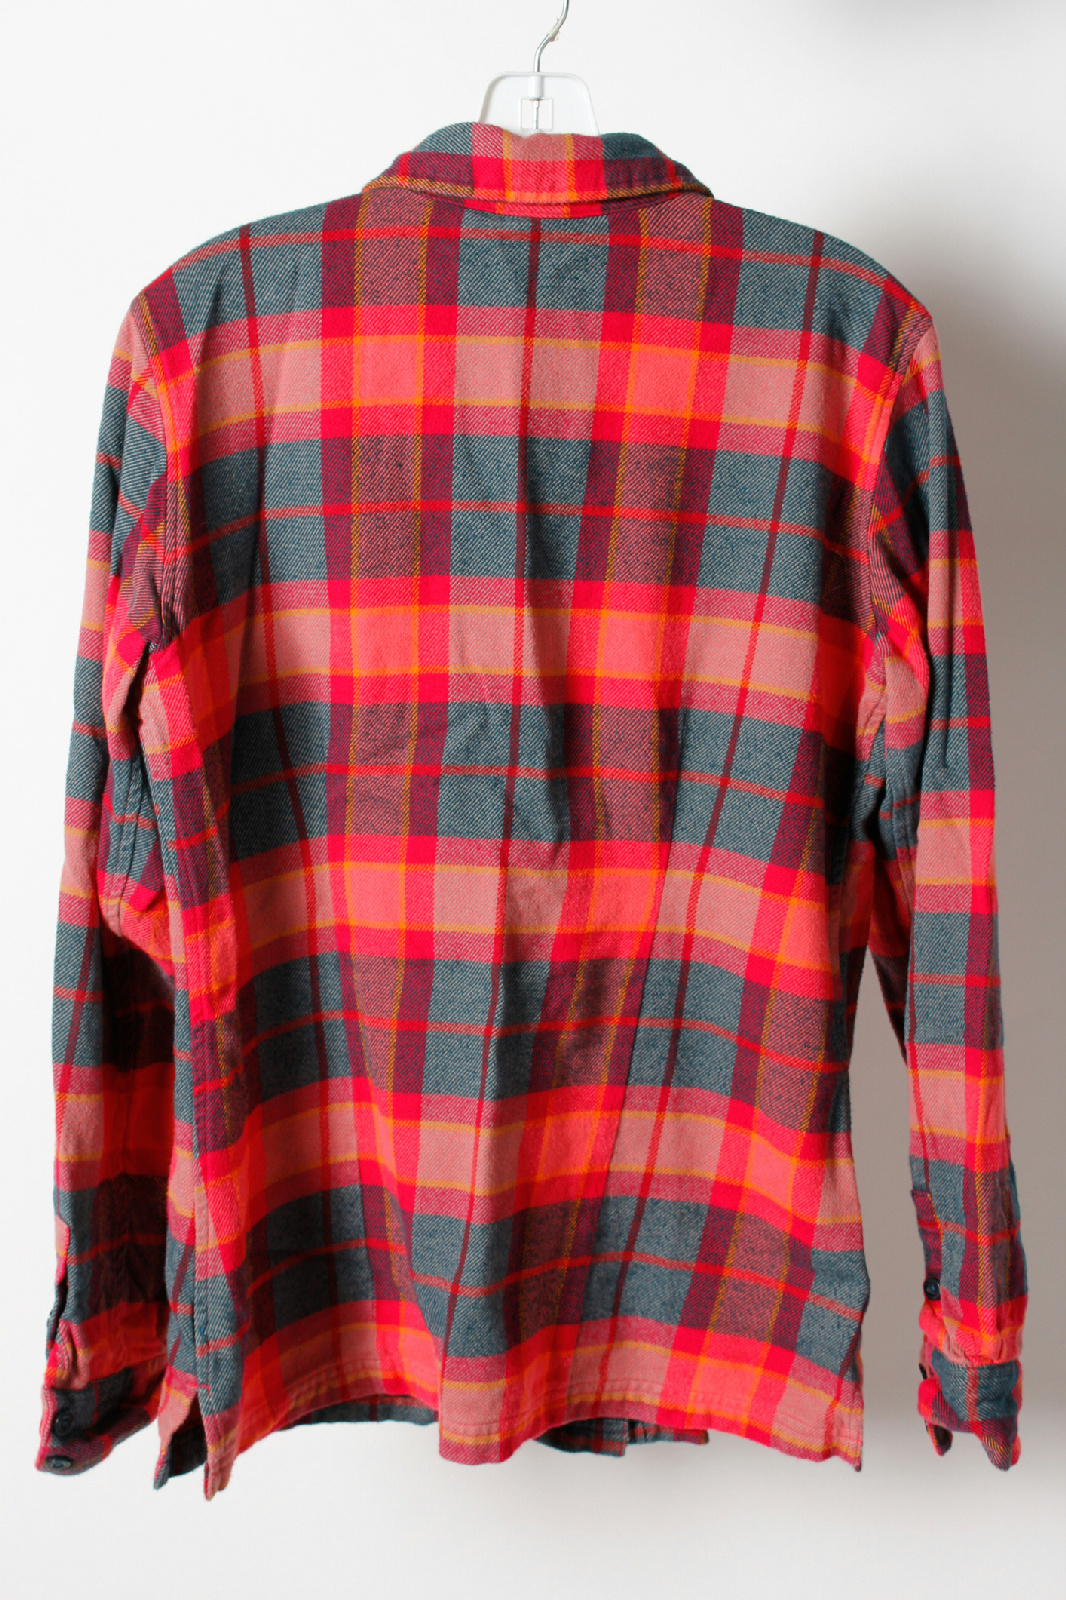 patagonia red blue 100 organic cotton plaid flannel casual shirt size 10 ebay. Black Bedroom Furniture Sets. Home Design Ideas